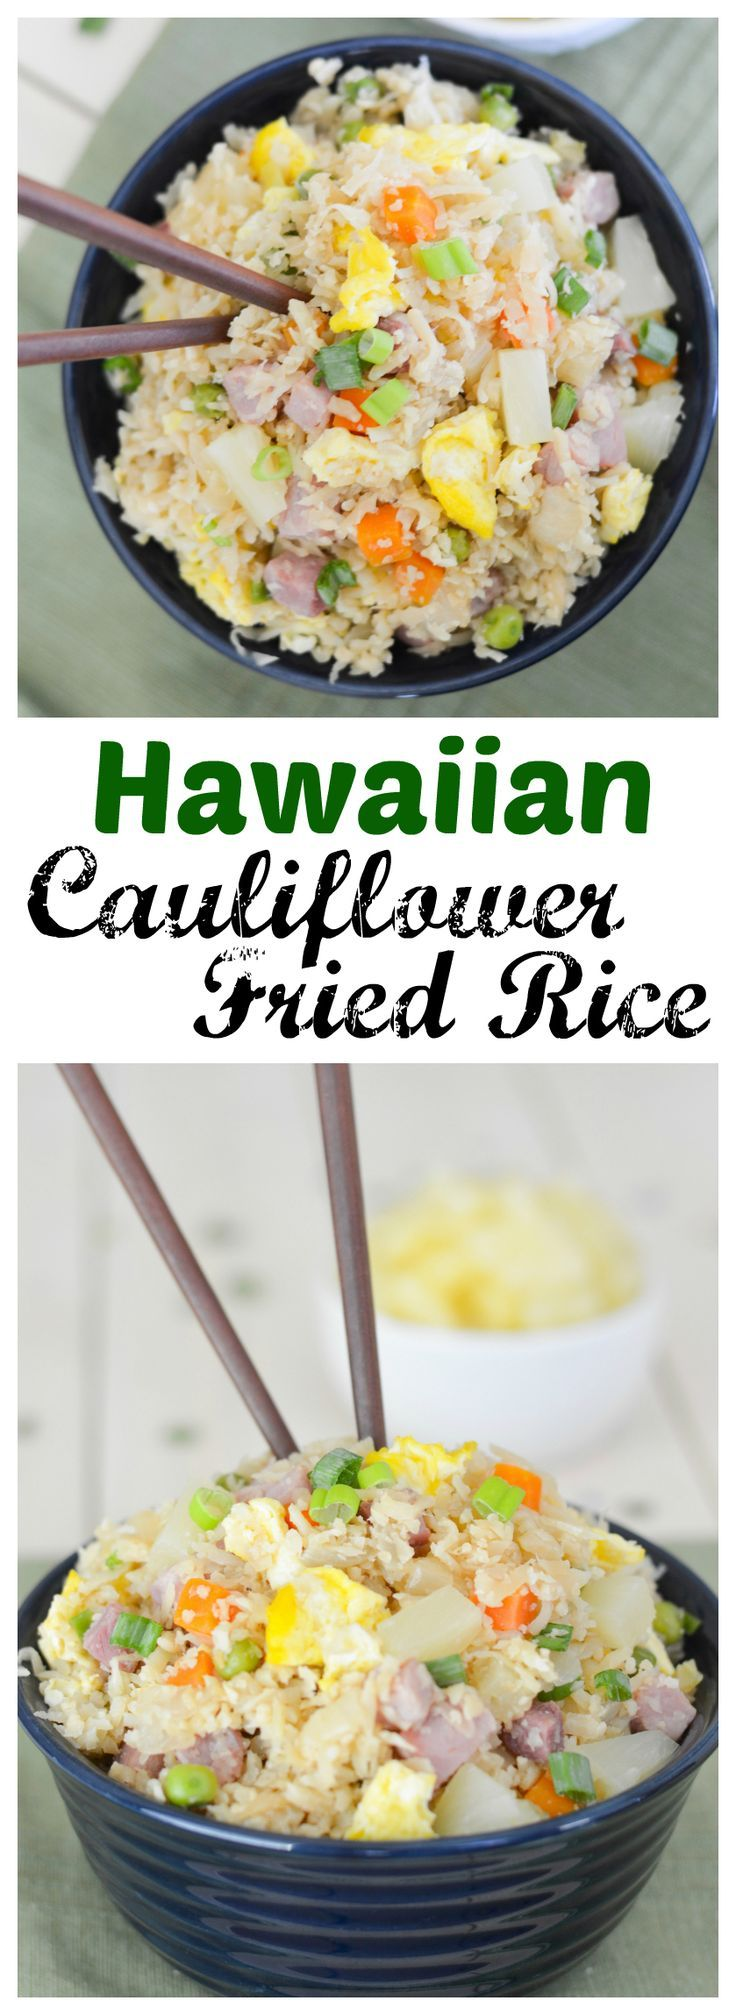 This Hawaiian Cauliflower Fried Rice is packed with so much flavor, including ham and pineapple– the Hawaiian classics!– that you won't even notice it's grain-free and full of veggies.